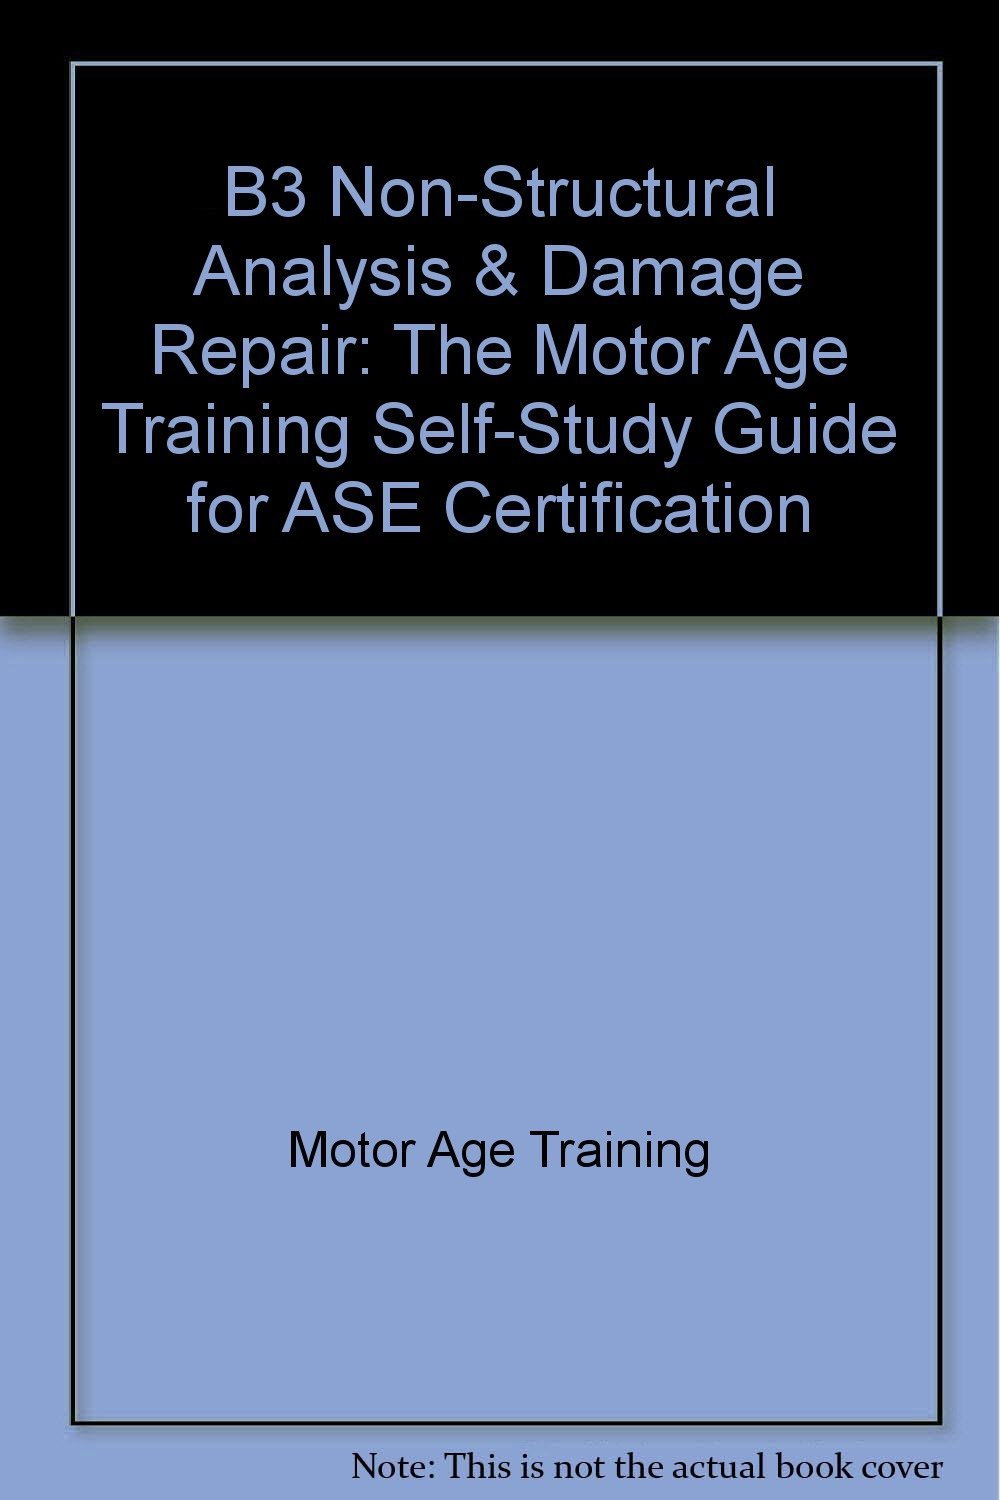 B3 non structural analysis damage repair the motor age training b3 non structural analysis damage repair the motor age training self study guide for ase certification motor age training 9781933180106 amazon 1betcityfo Image collections